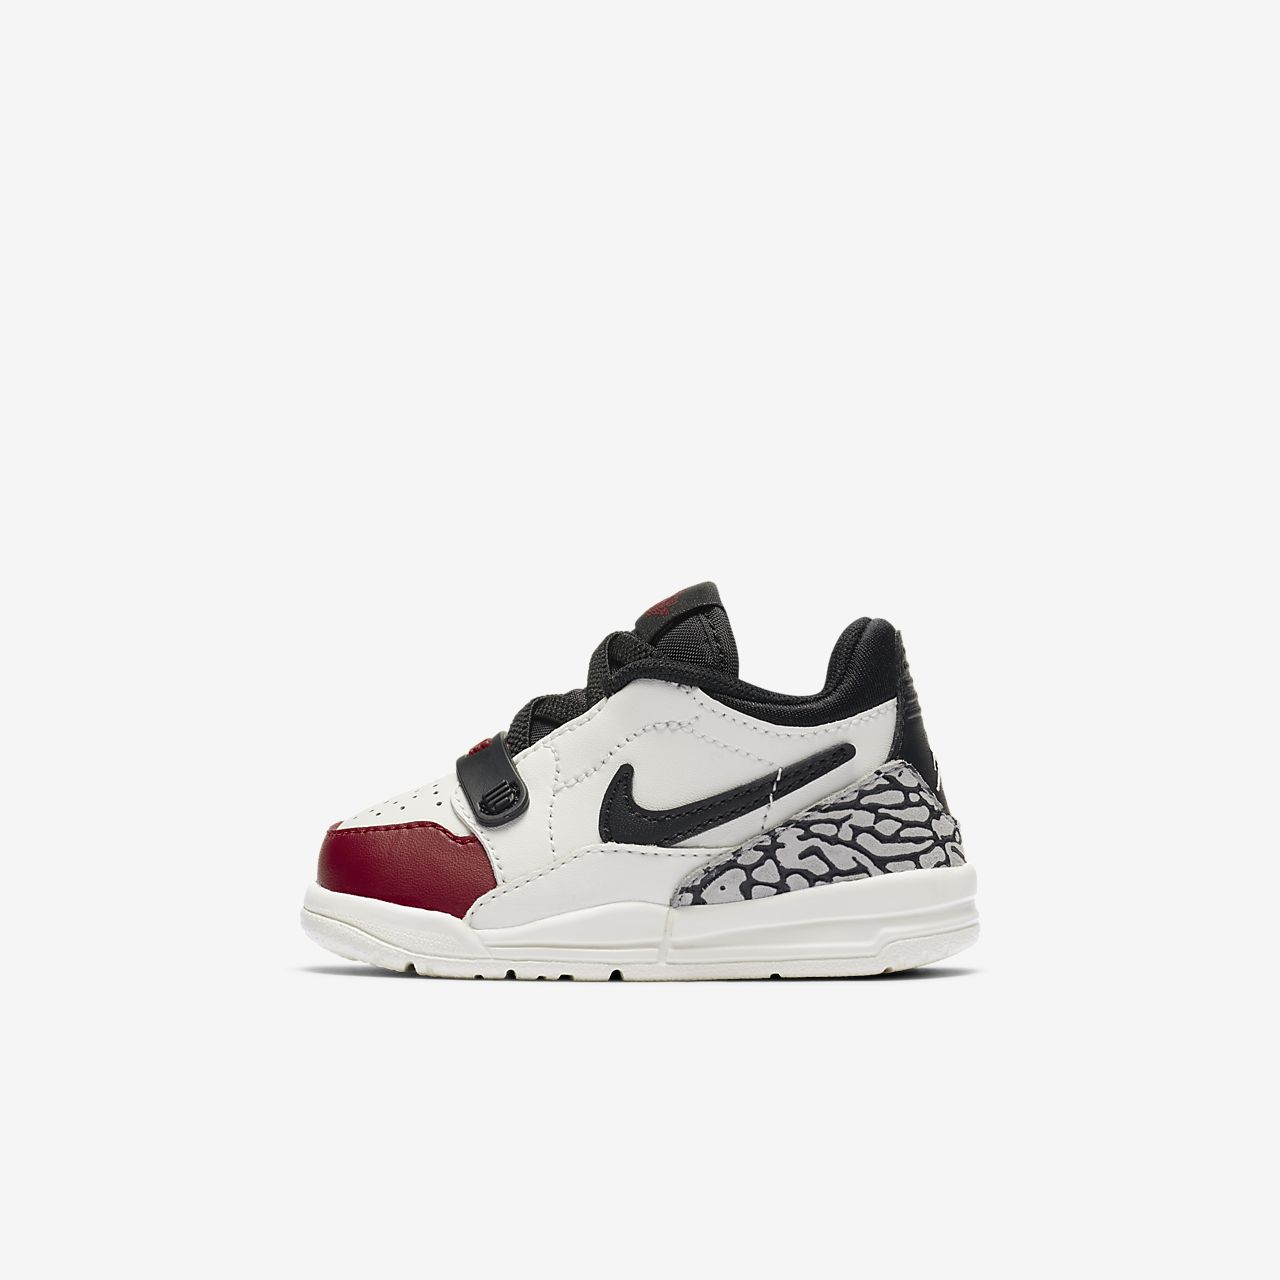 Sko Air Jordan Legacy 312 Low för baby/små barn